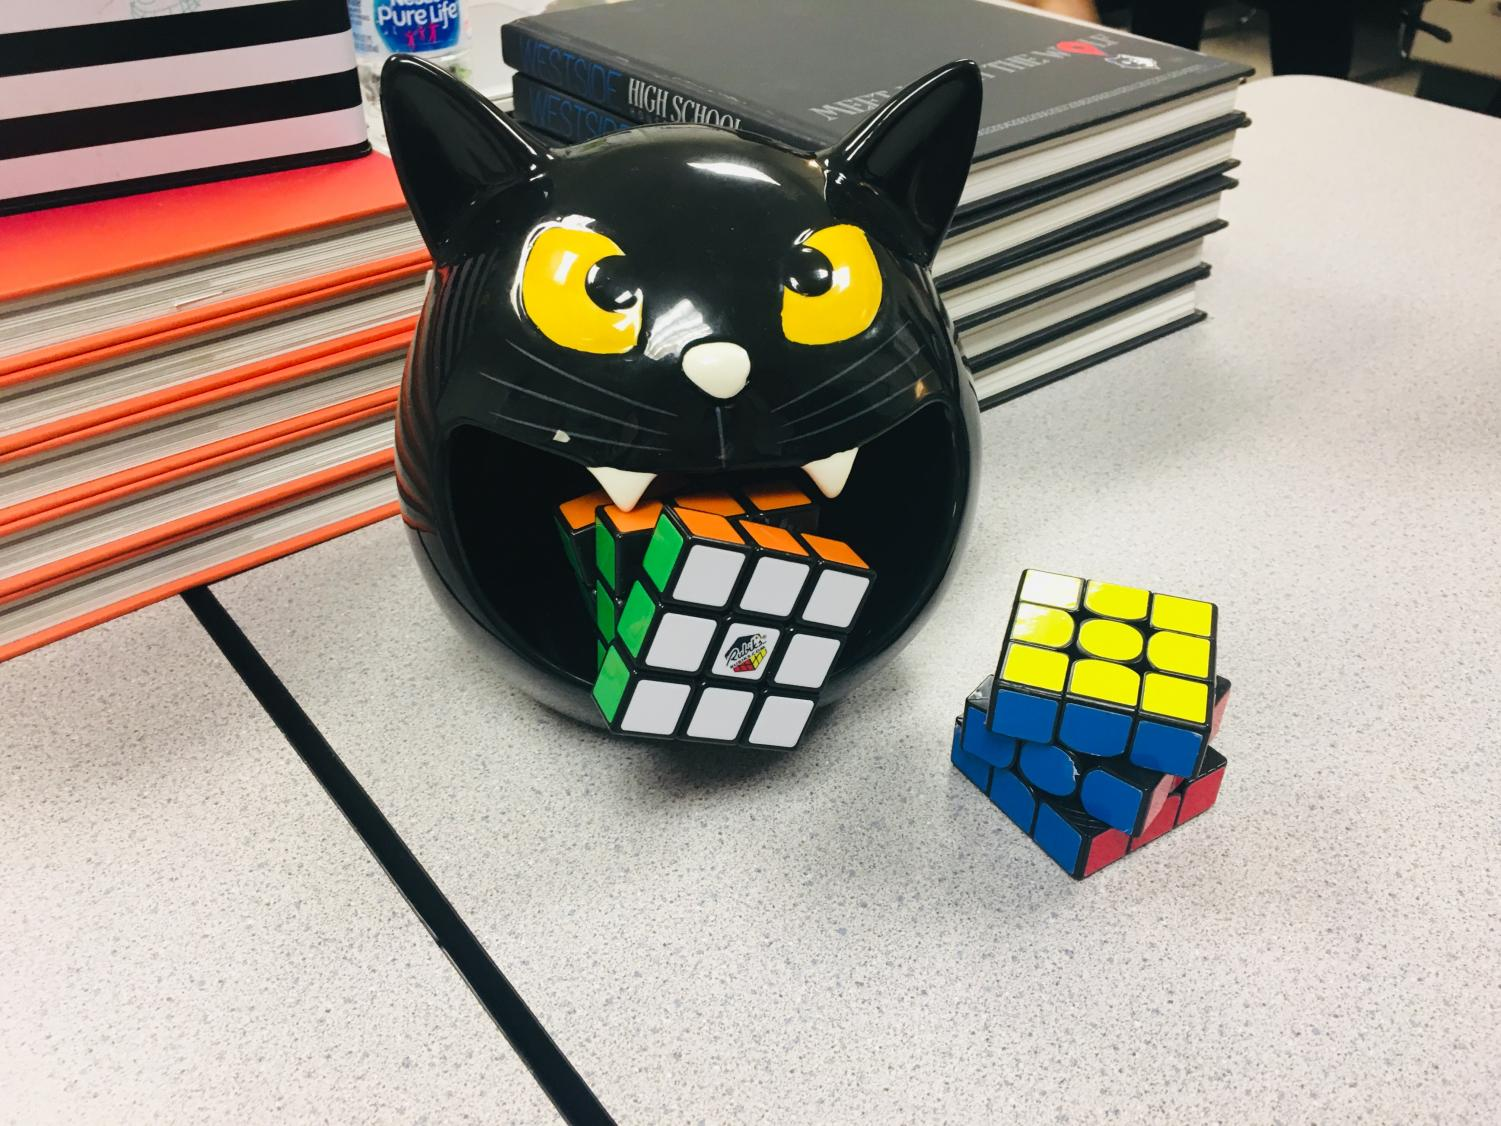 Two Rubik's cubes on display, with one in the mouth of a Halloween decoration.